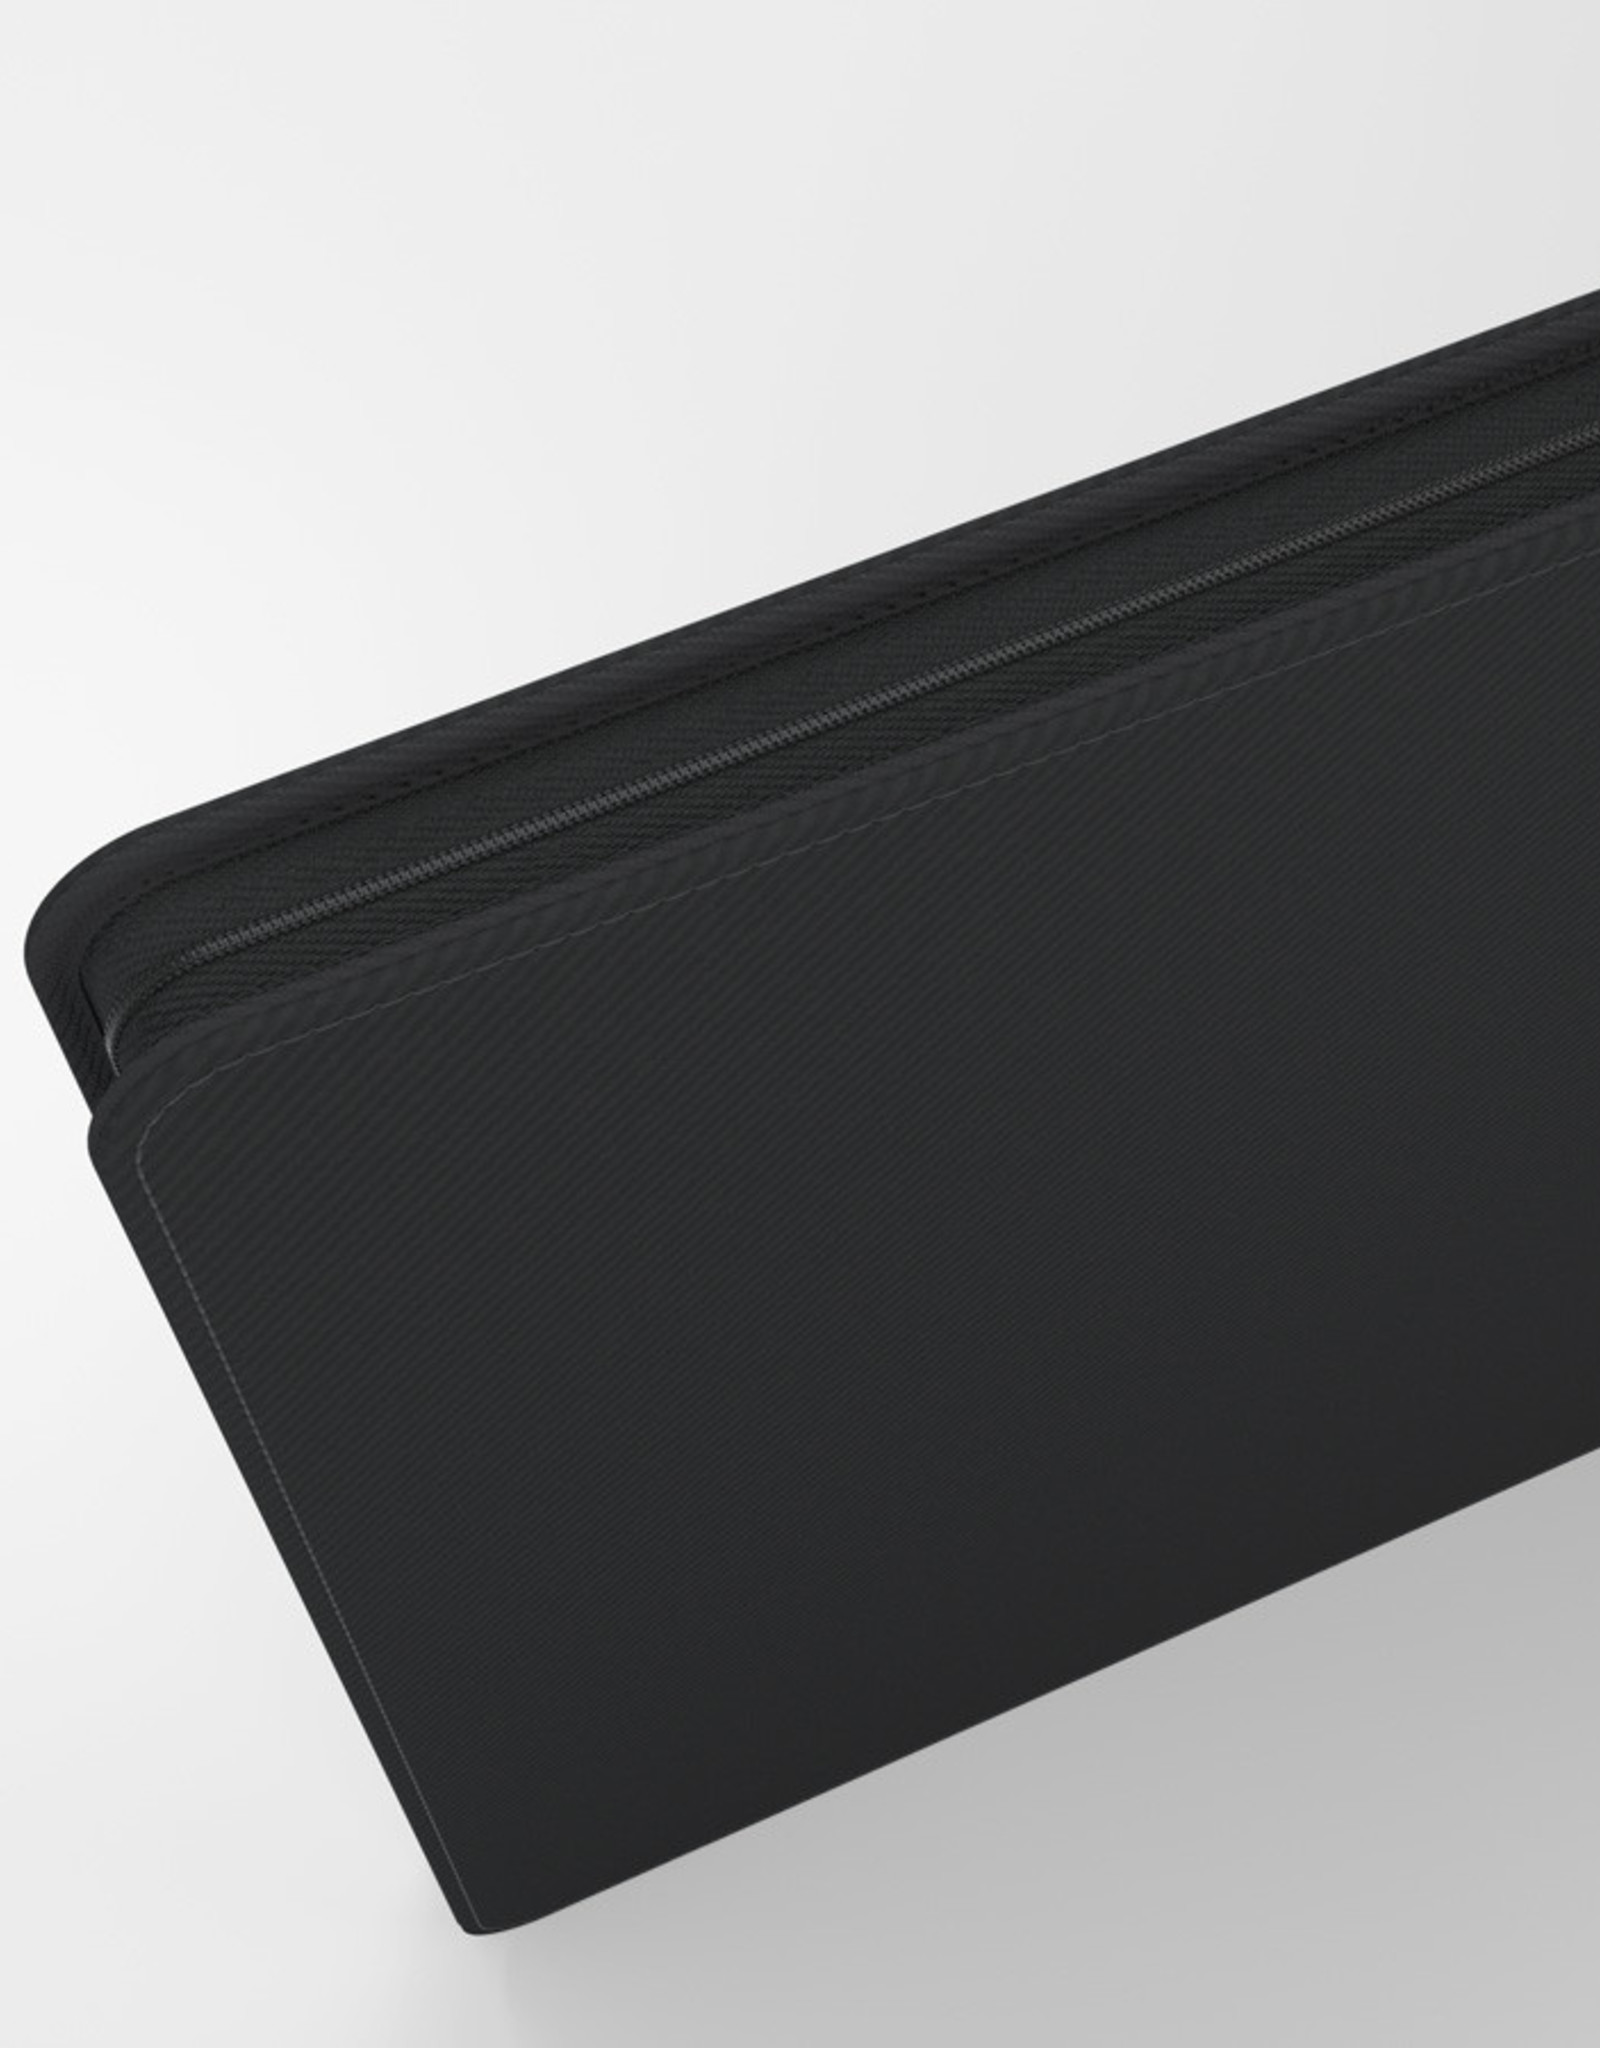 Binder: 18-Pocket Zip-Up Album Black